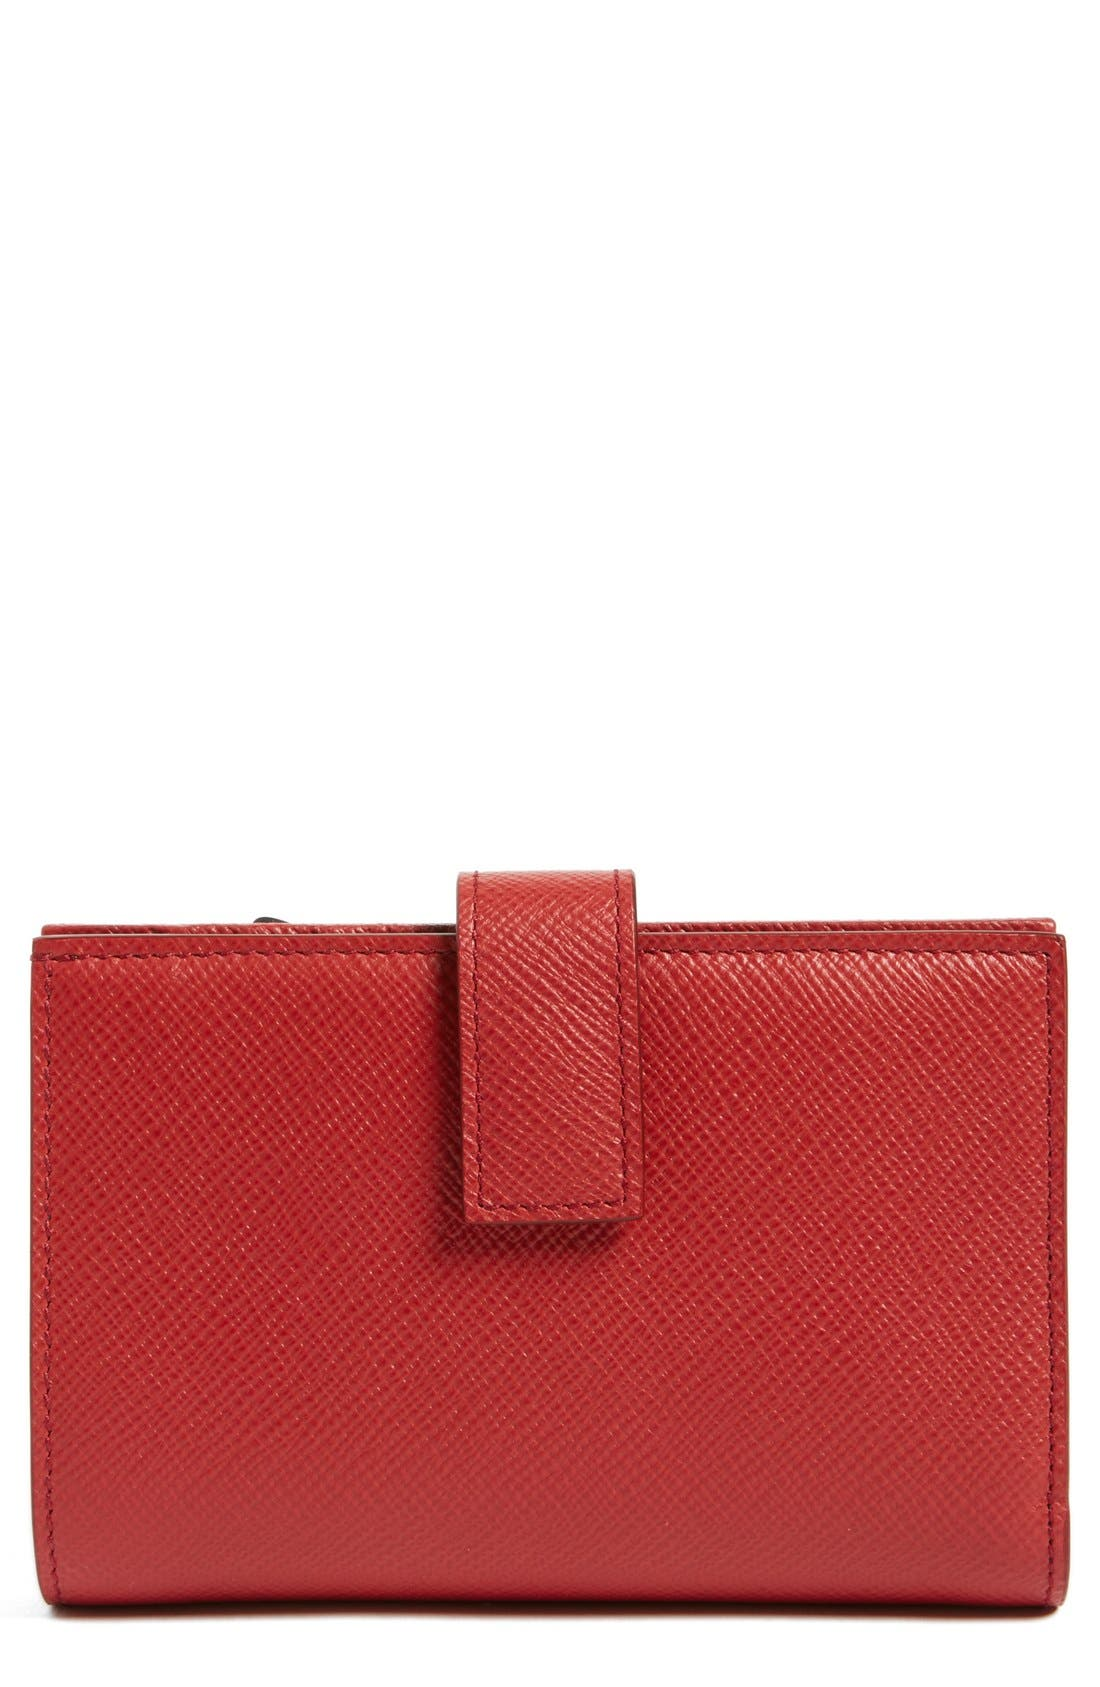 'Medium' Continental Wallet,                         Main,                         color, Red